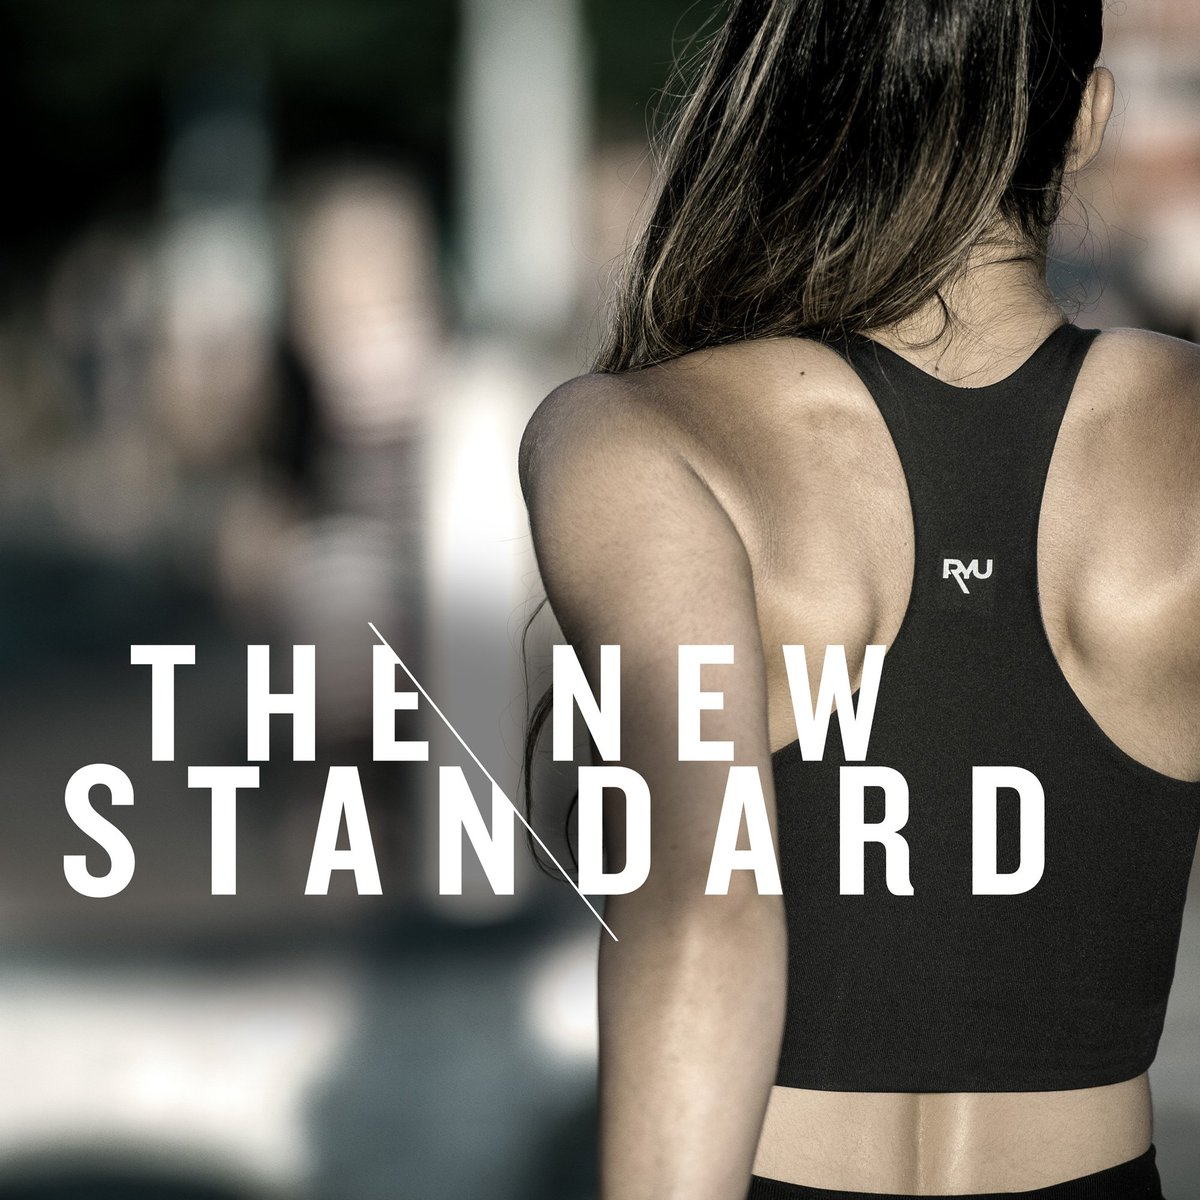 We are #TheNewStandard.  Don't settle.  https://t.co/qnl74hH4nc https://t.co/xf0yxvshPq